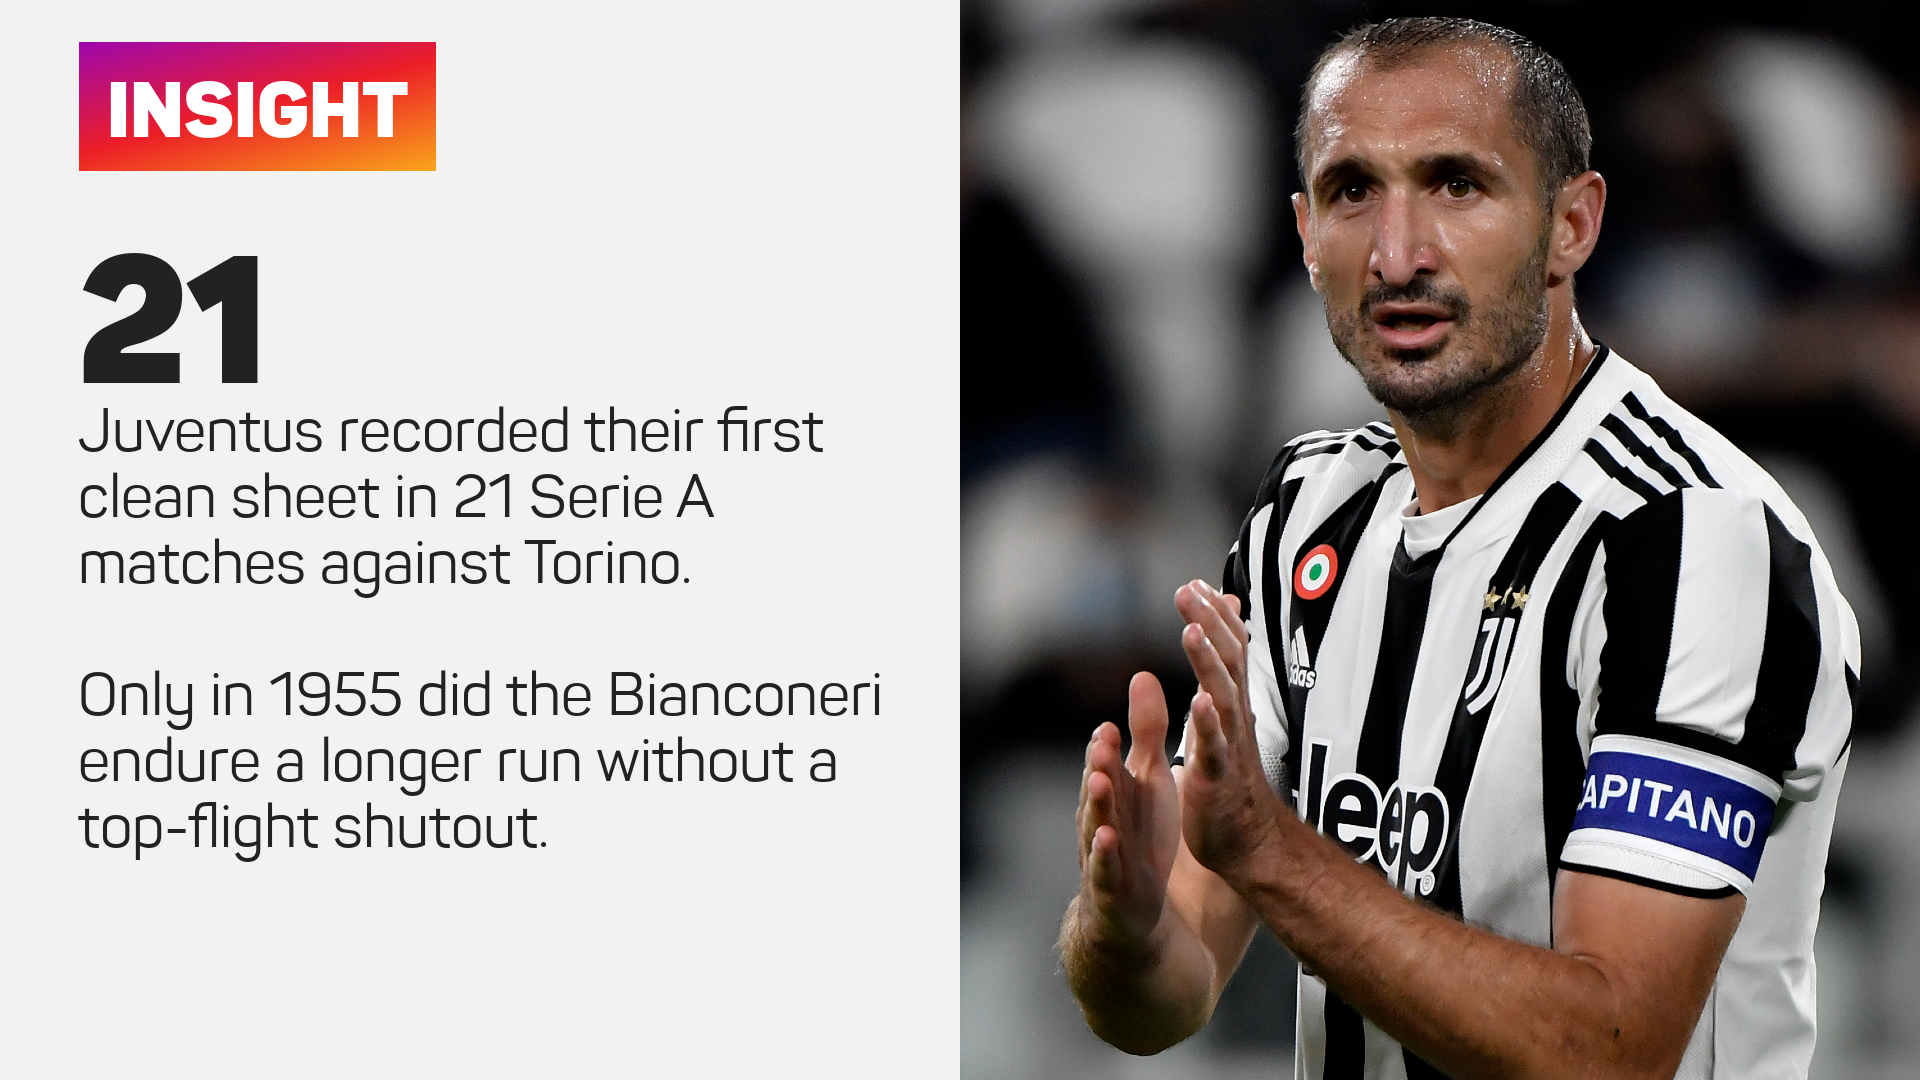 Juventus Serie A defensice record